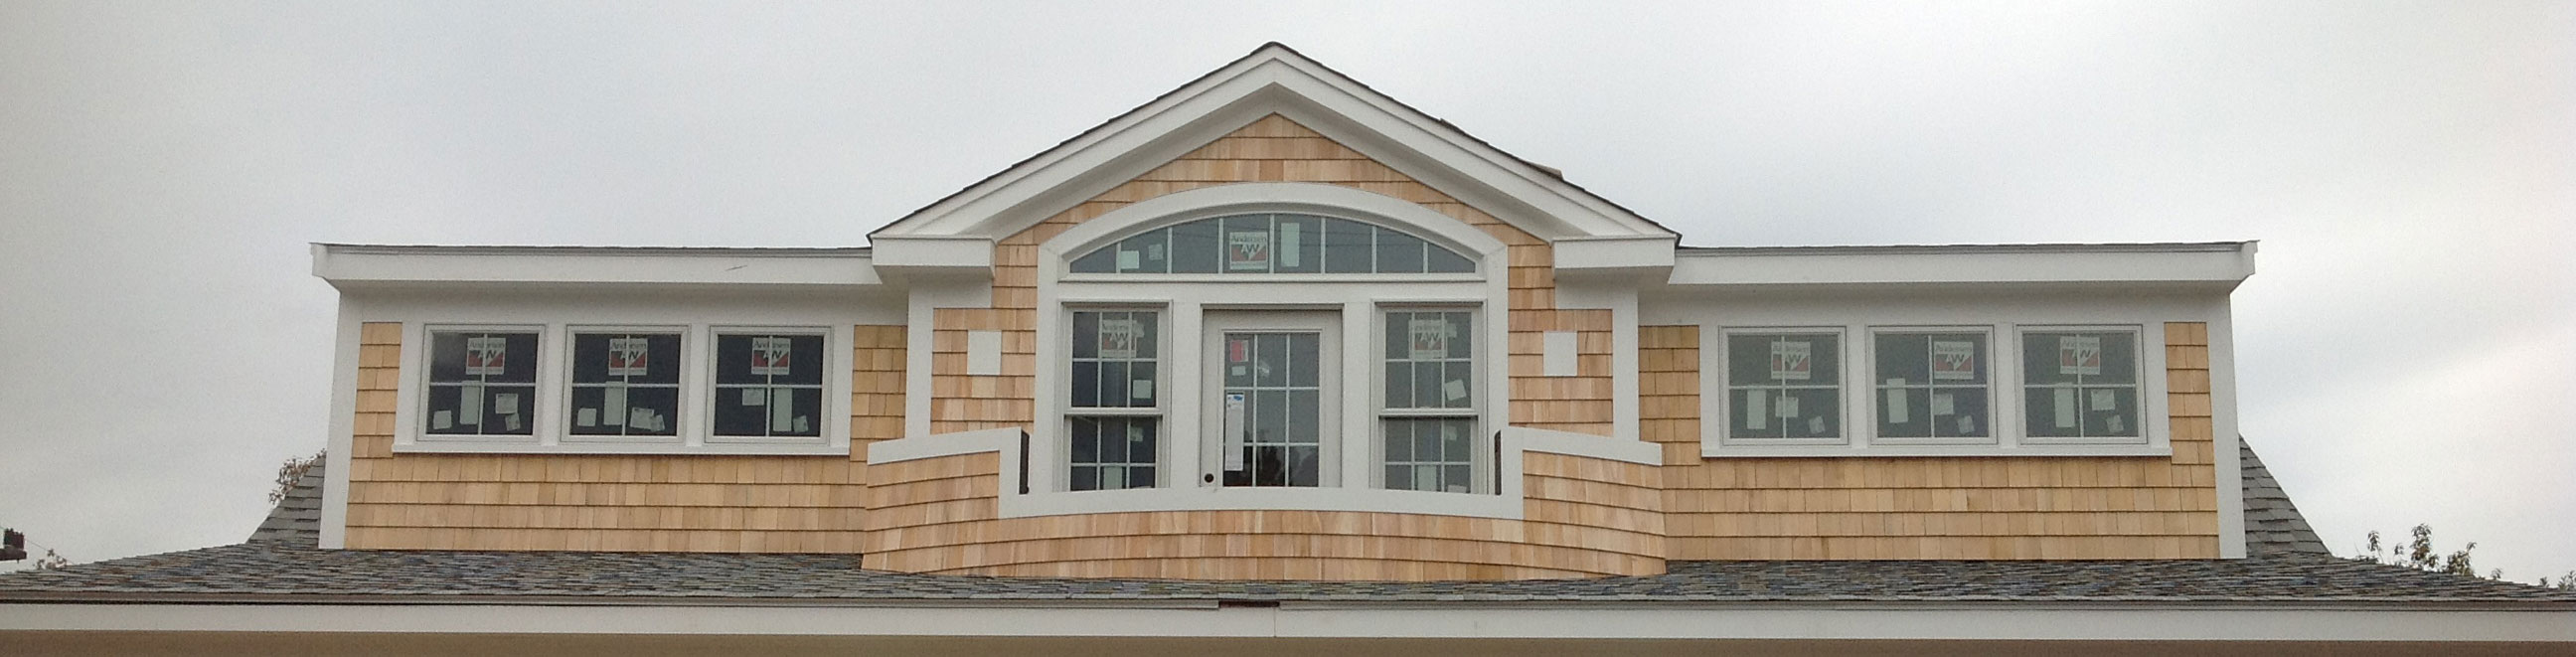 Home improvement contractor cape cod roofing and siding for Cape cod house renovation